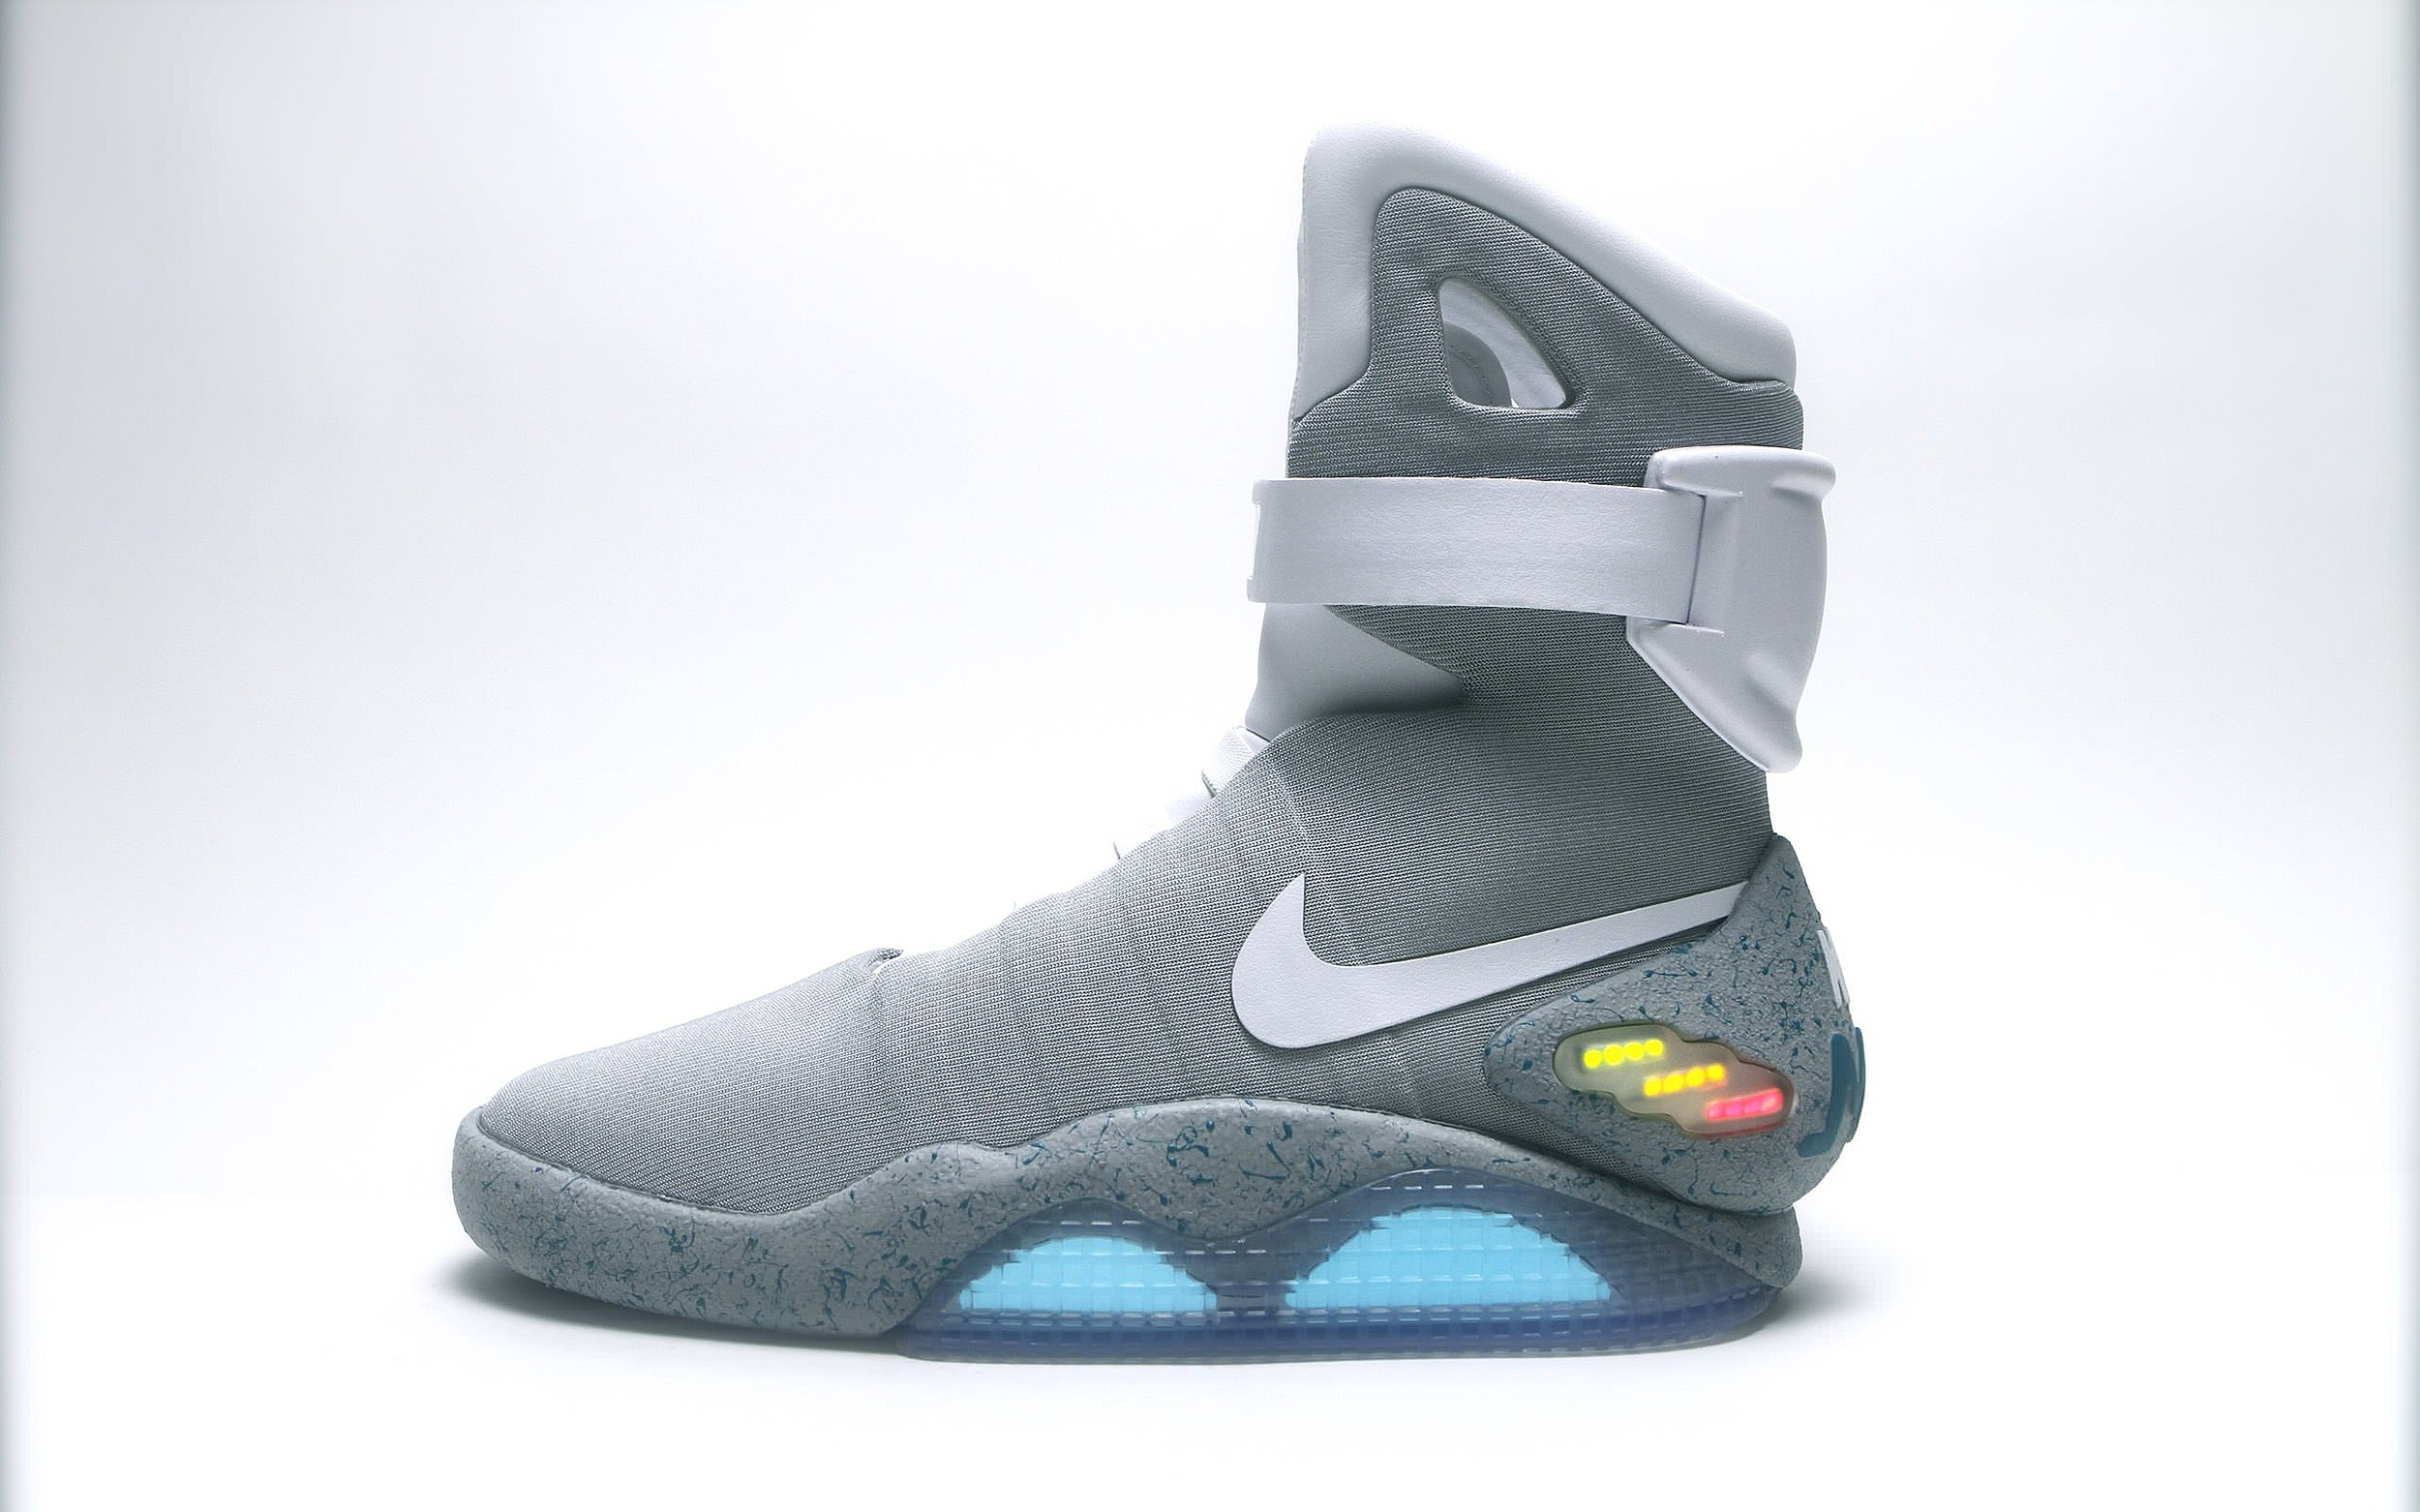 nike officially reveals self-lacing 'back to the future' sneakers